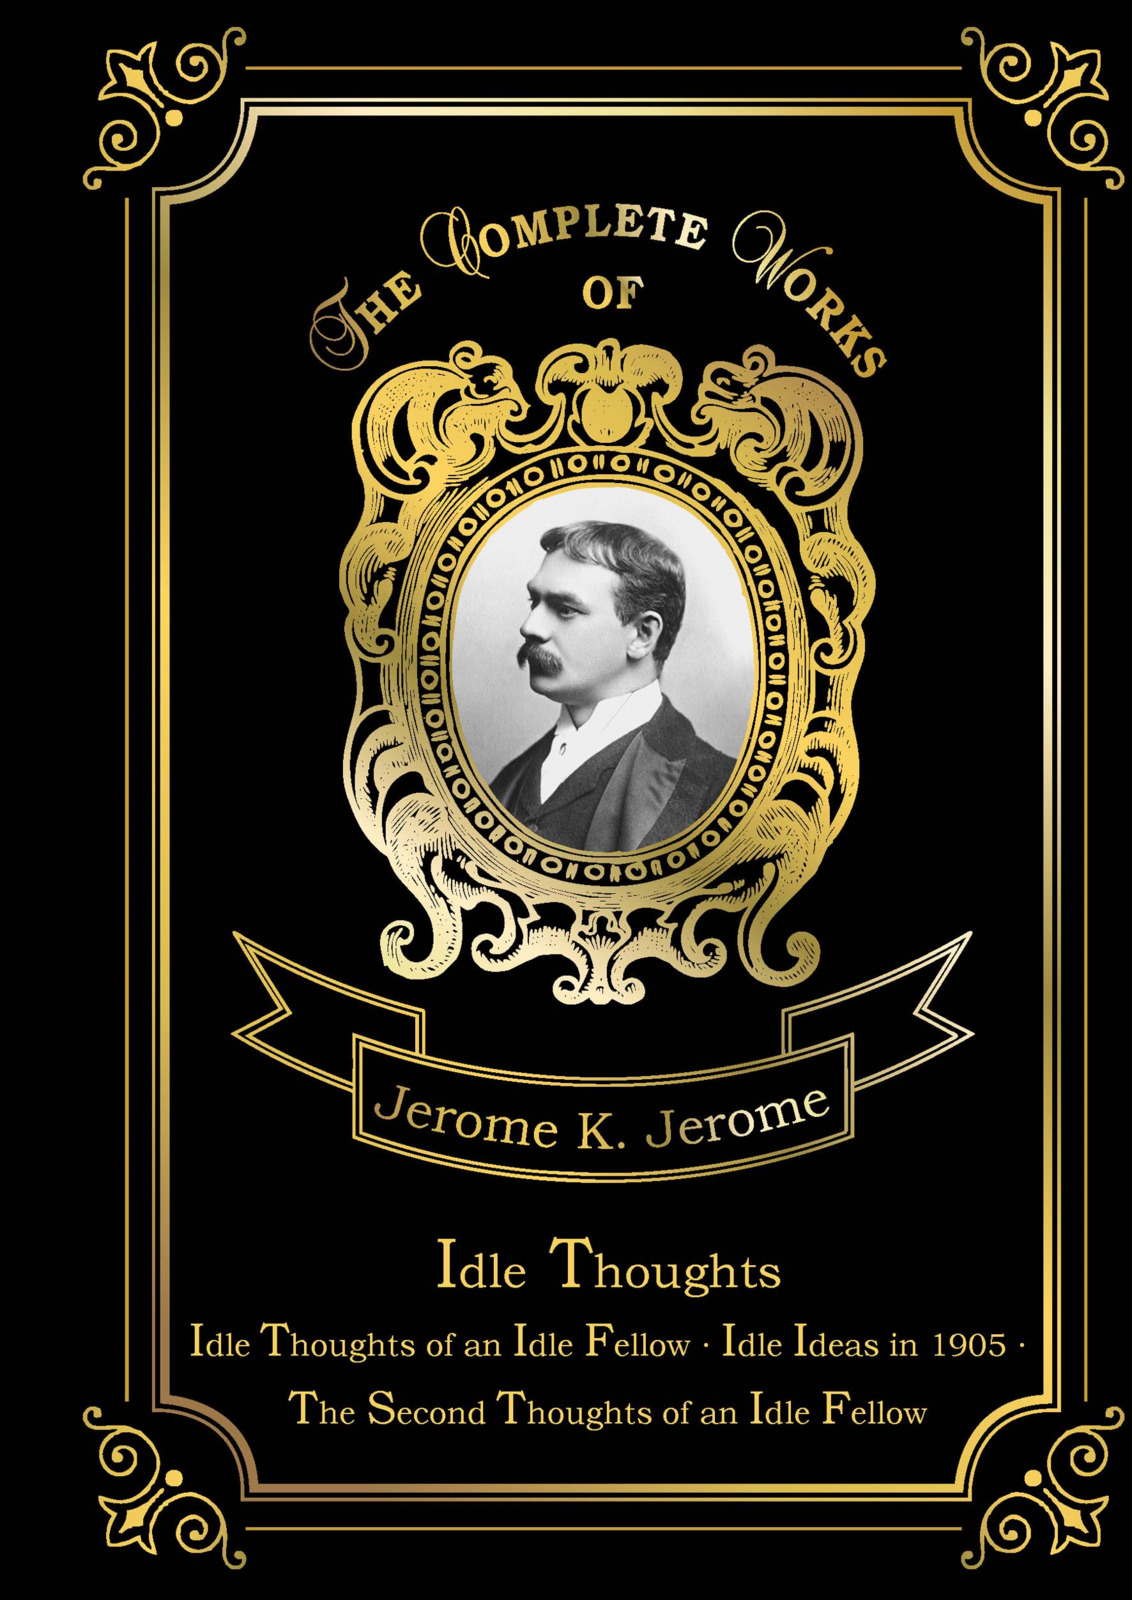 Jerome K. Jerome Idle Thoughts xenophon the memorable thoughts of socrates